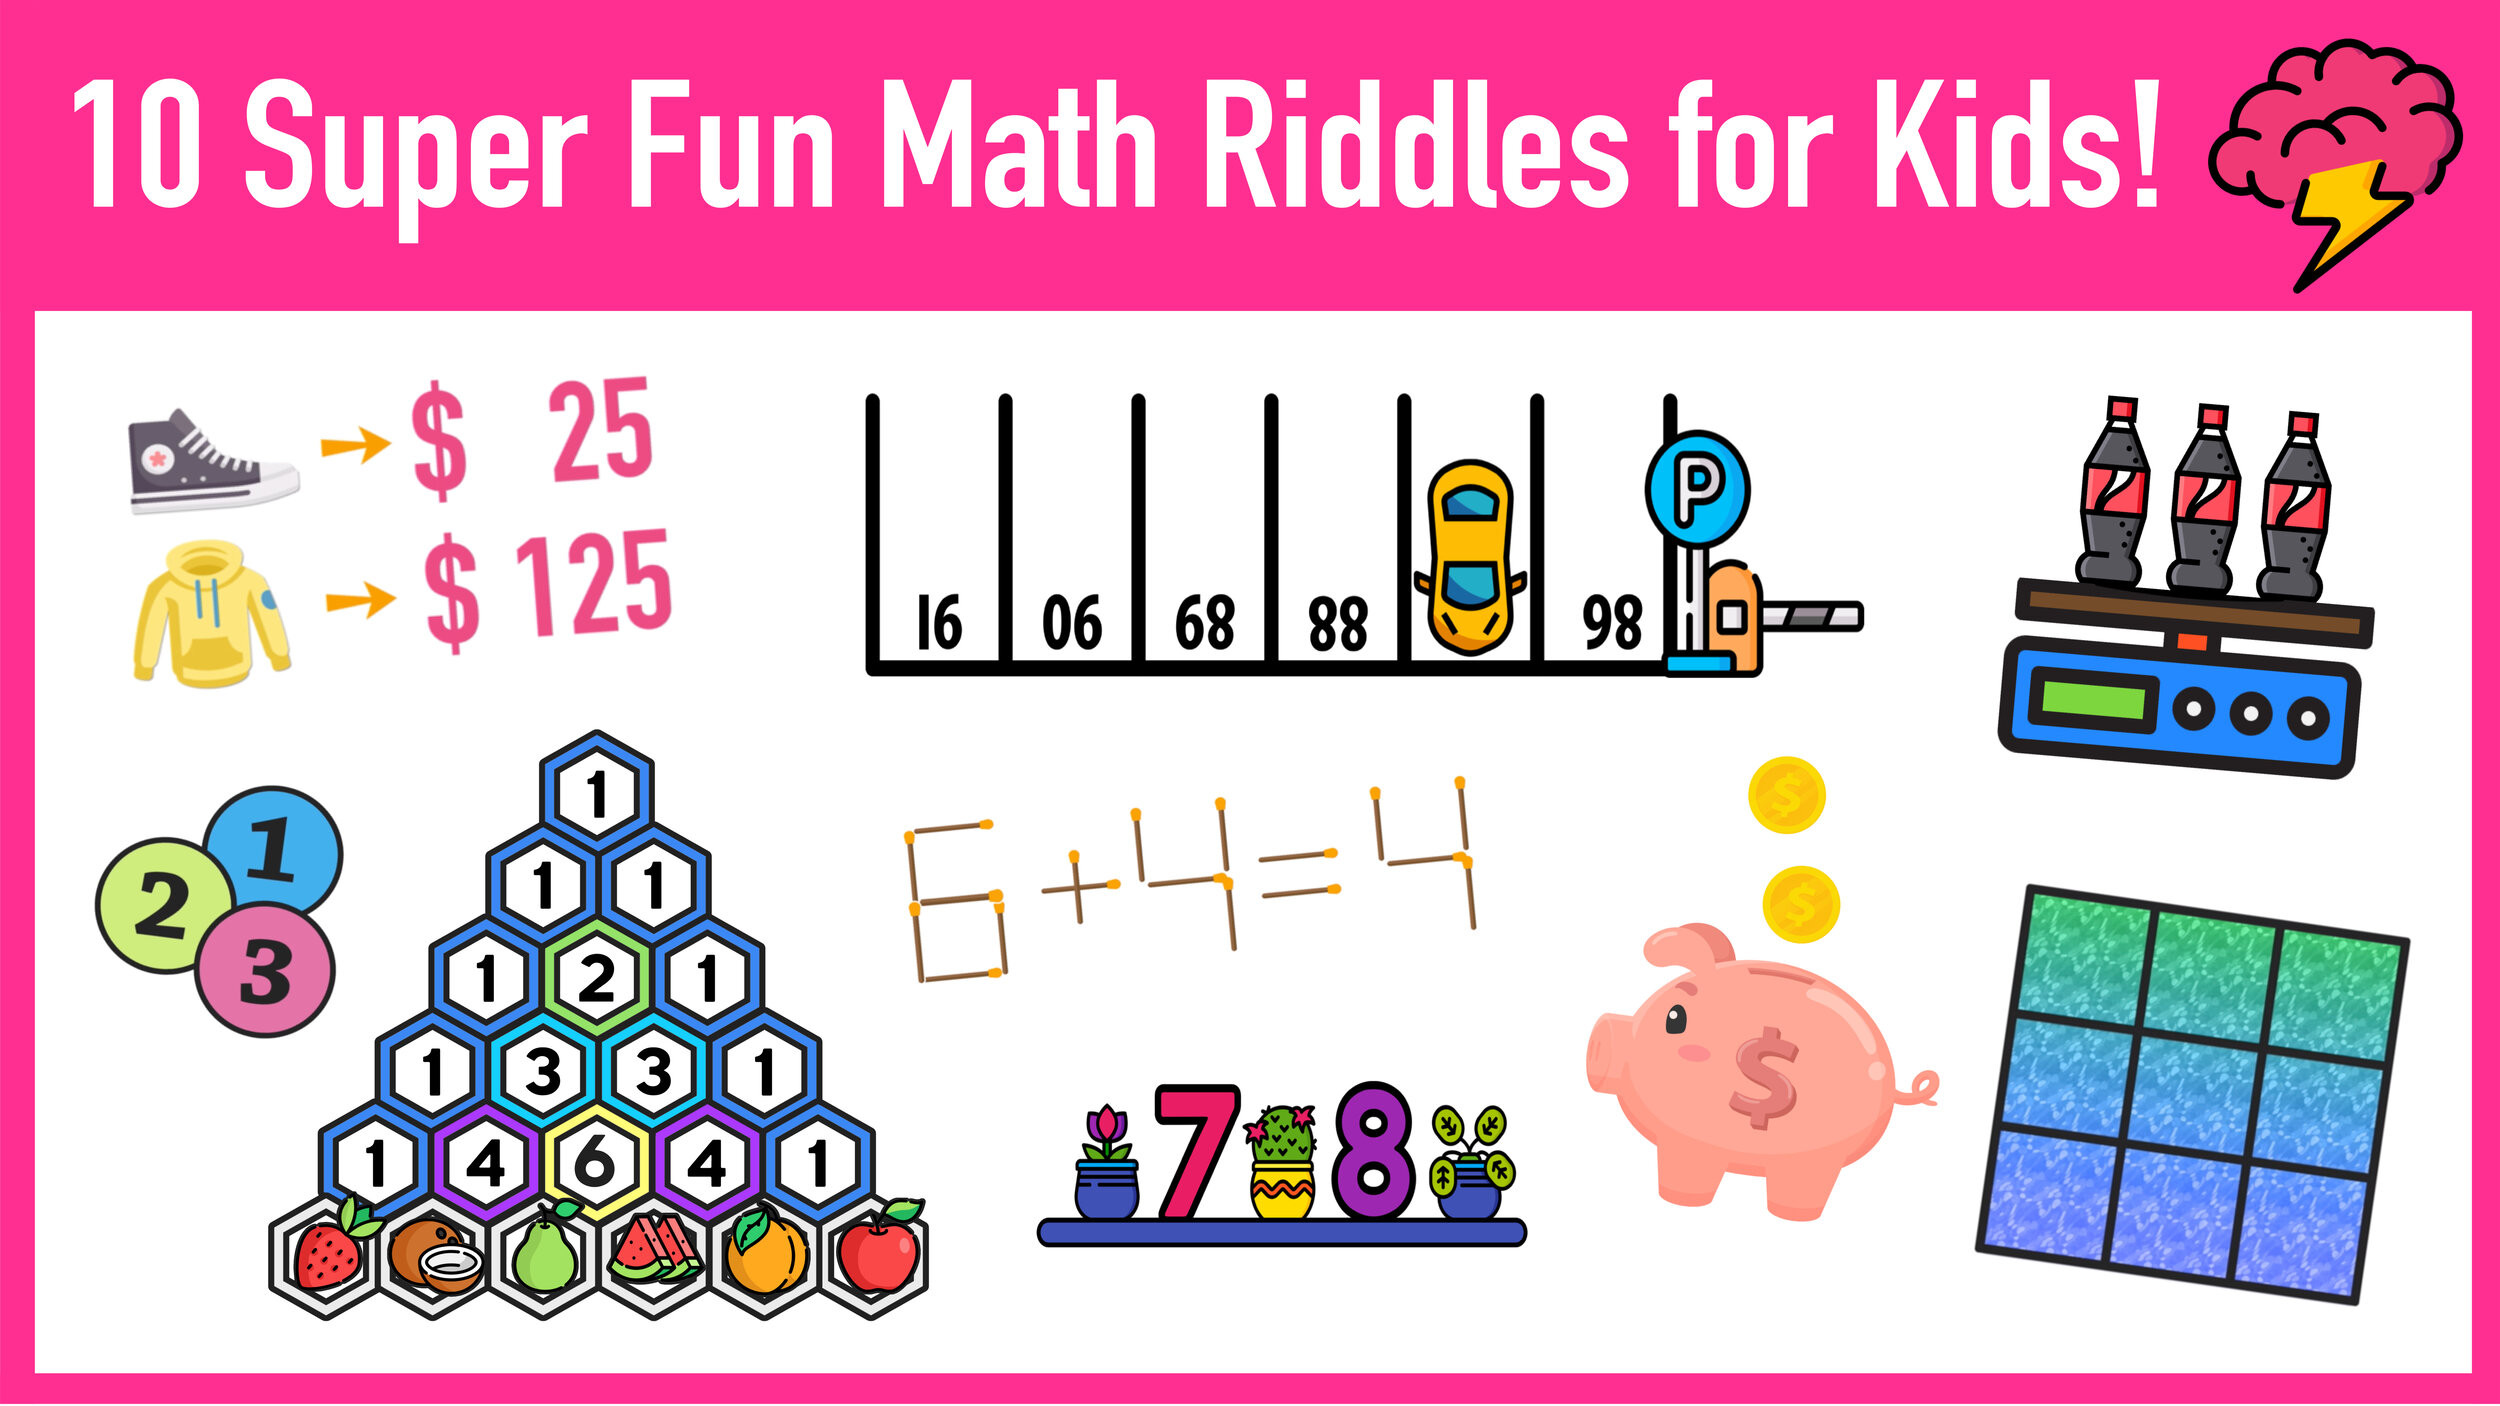 6th Grade Math Puzzles Pdf 10 Super Fun Math Riddles for Kids Ages 10 with Answers